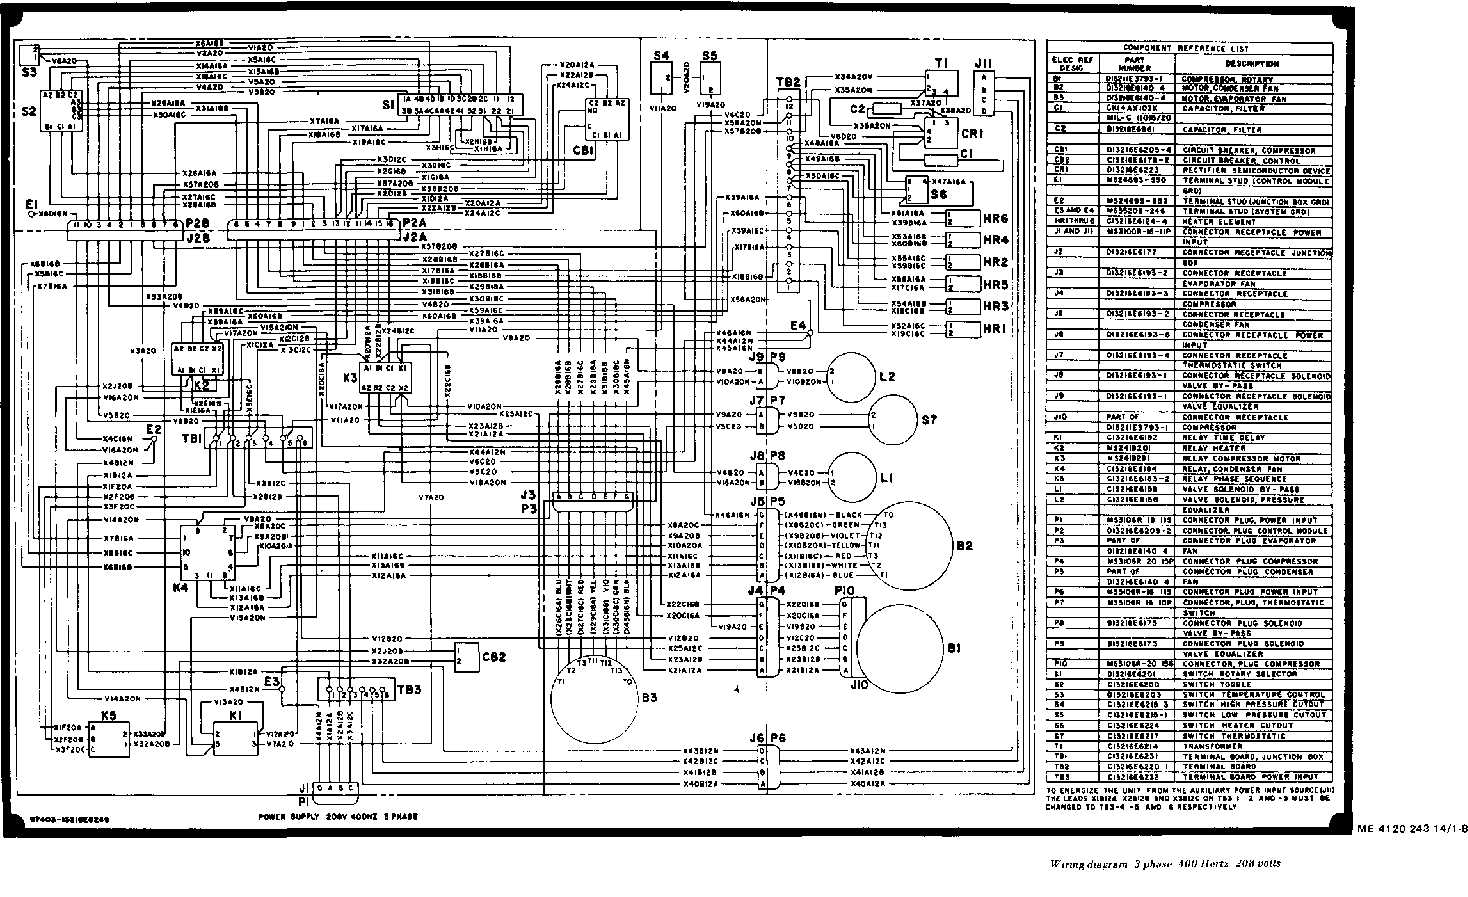 220 volt 3 phase motor wiring diagram water geyser 208 volts single diagrams get free